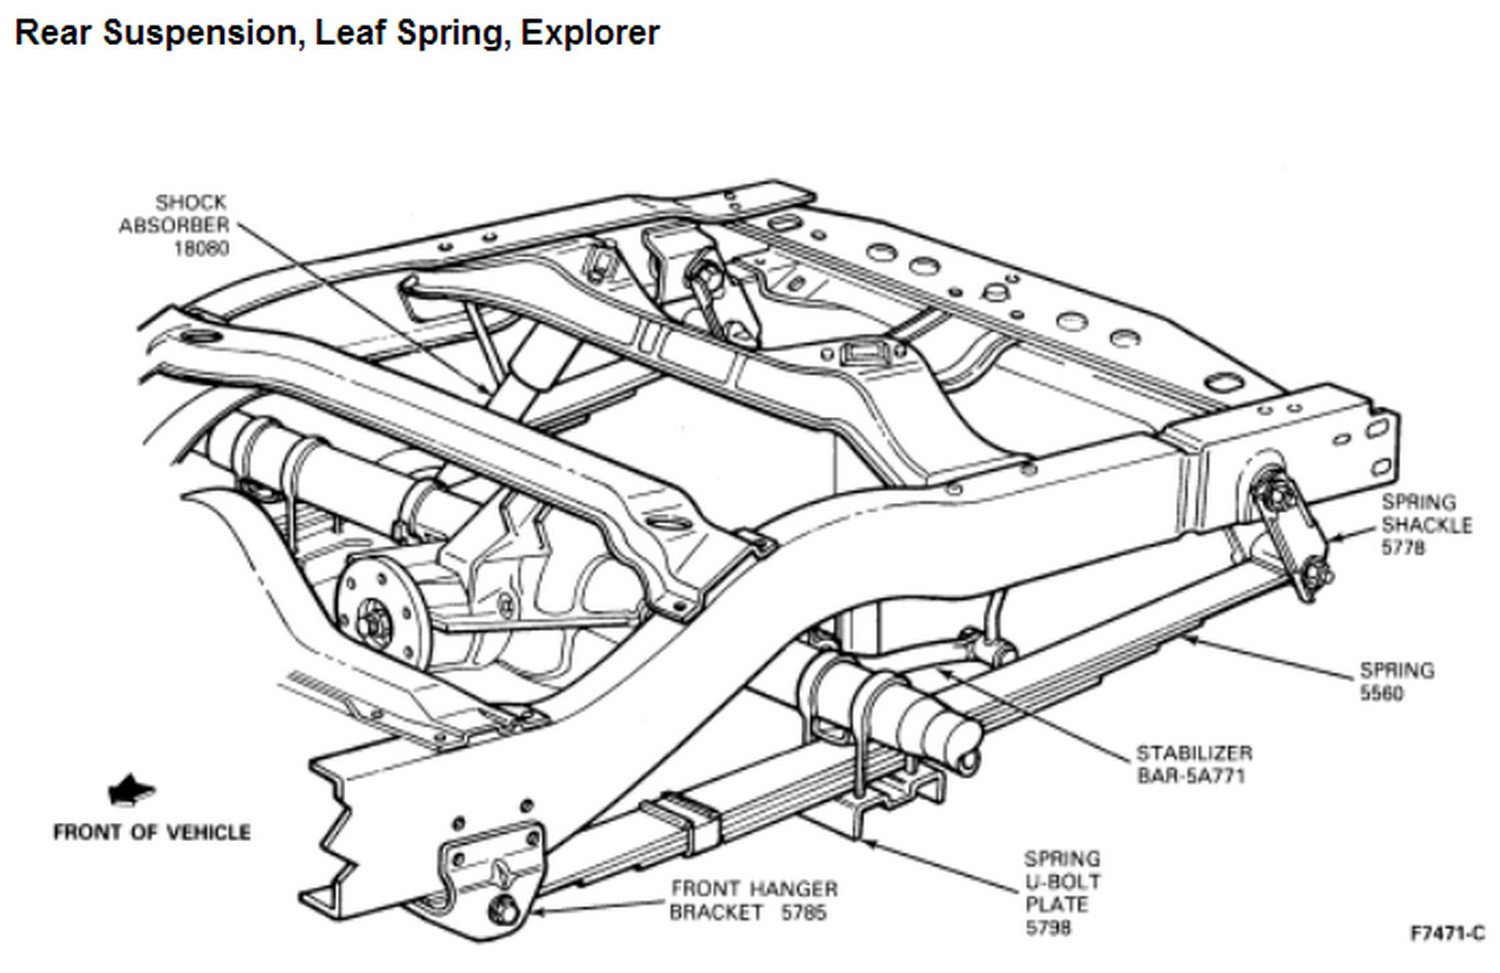 Wiring Diagram For Ford F450 Rear Air Suspension